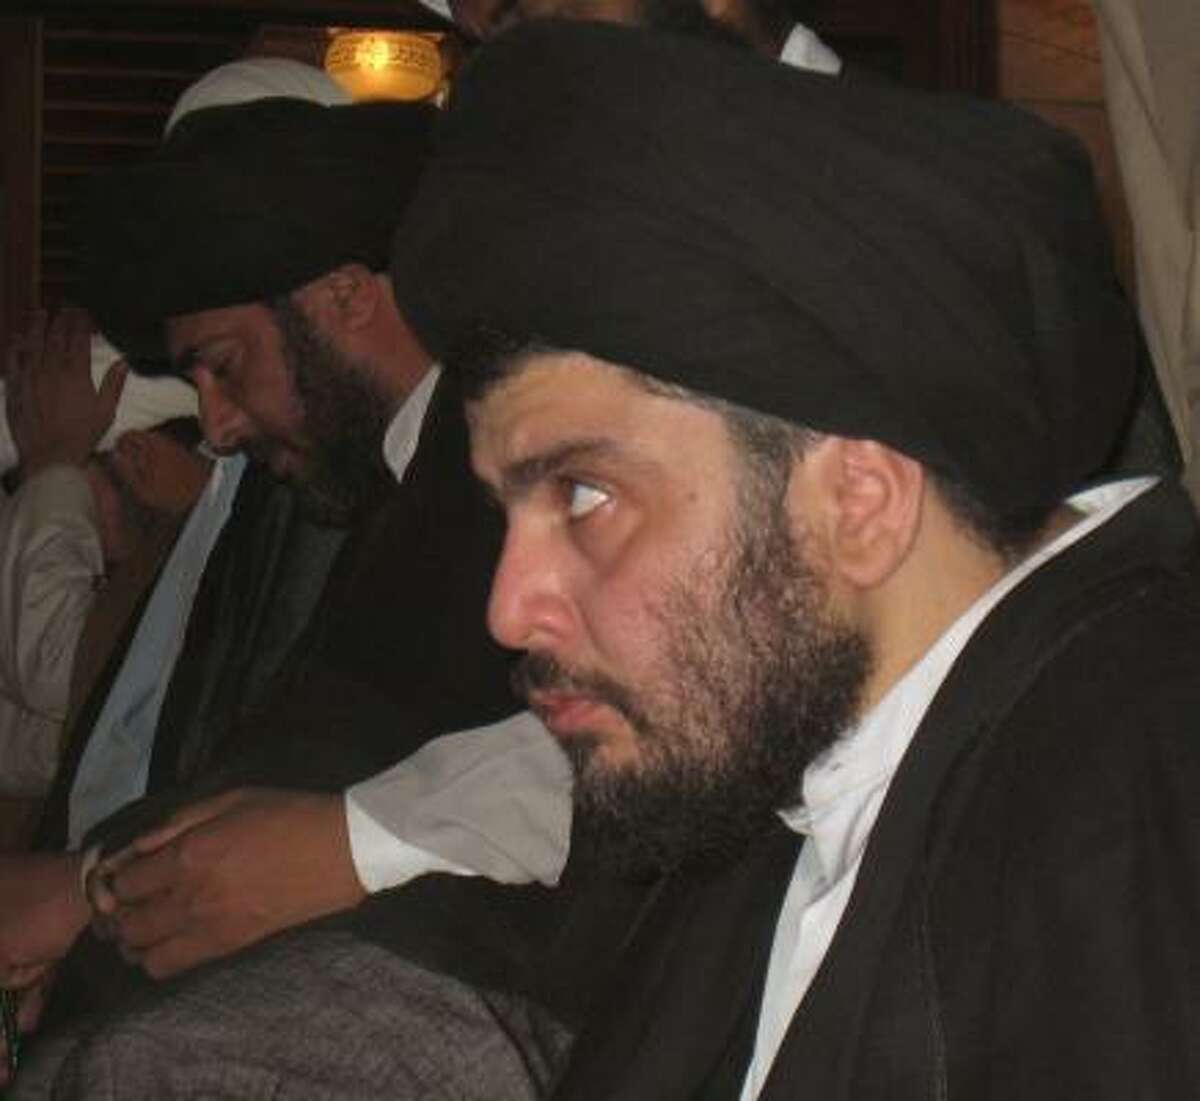 Radical Shiite cleric Muqtada al-Sadr remains a threat to Iraq peace as Shiites battle for control of oil fields.